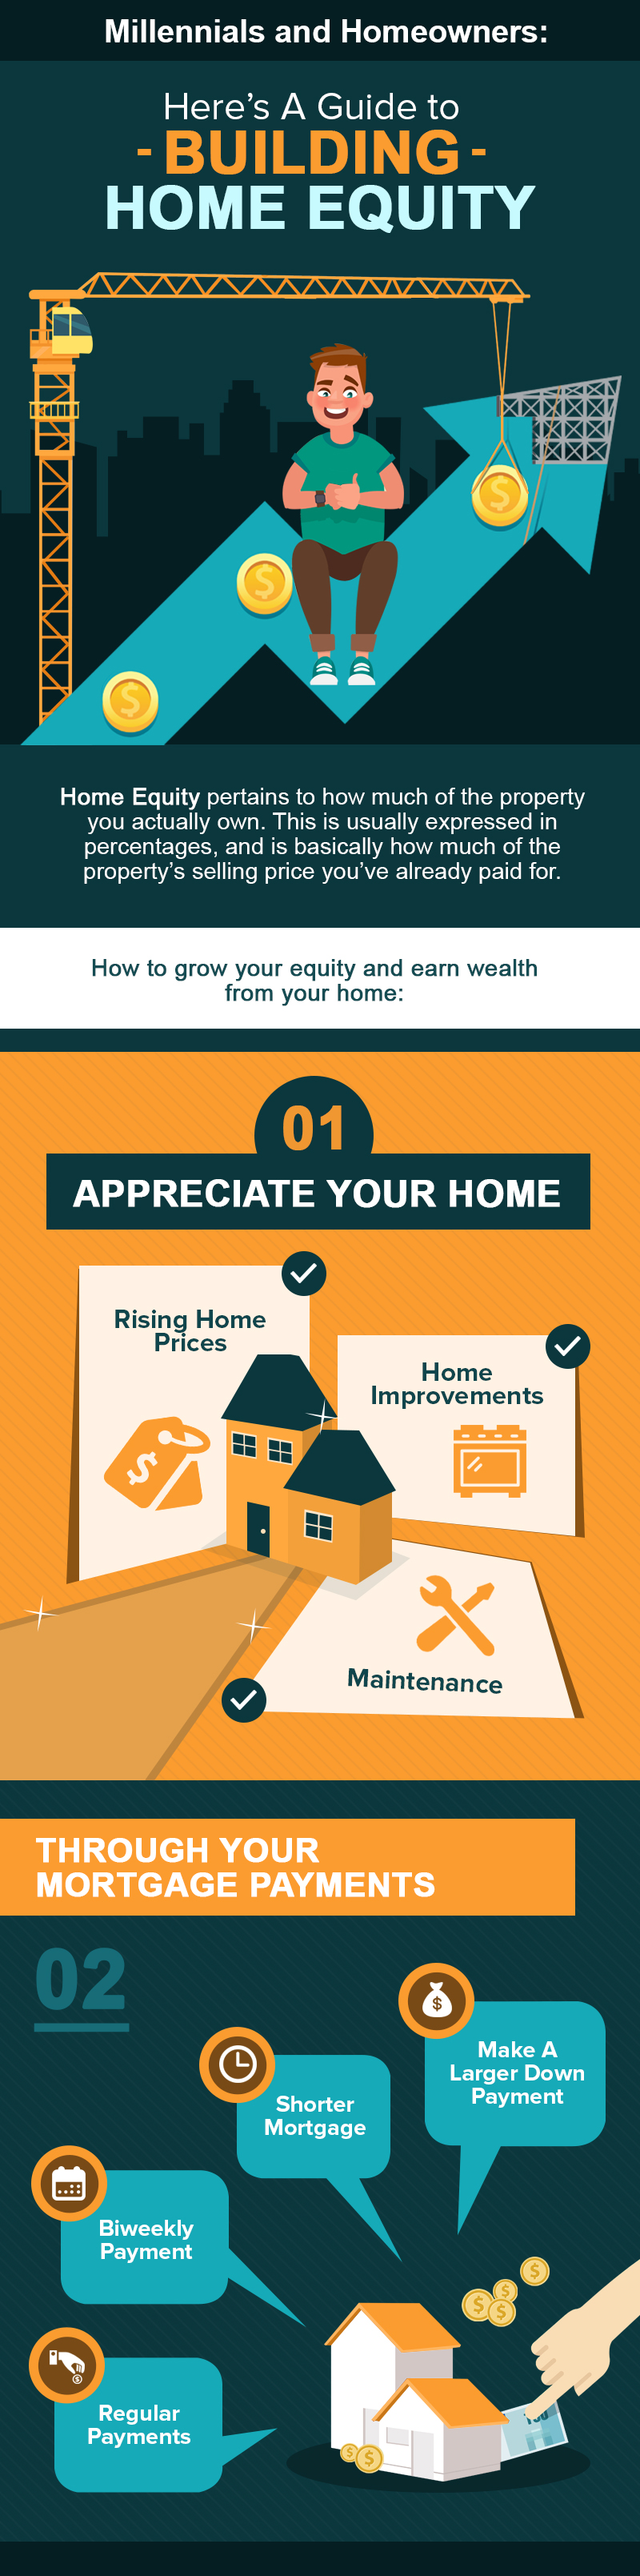 Millennials and Young Homeowners: Here's Your Guide To Building Home Equity